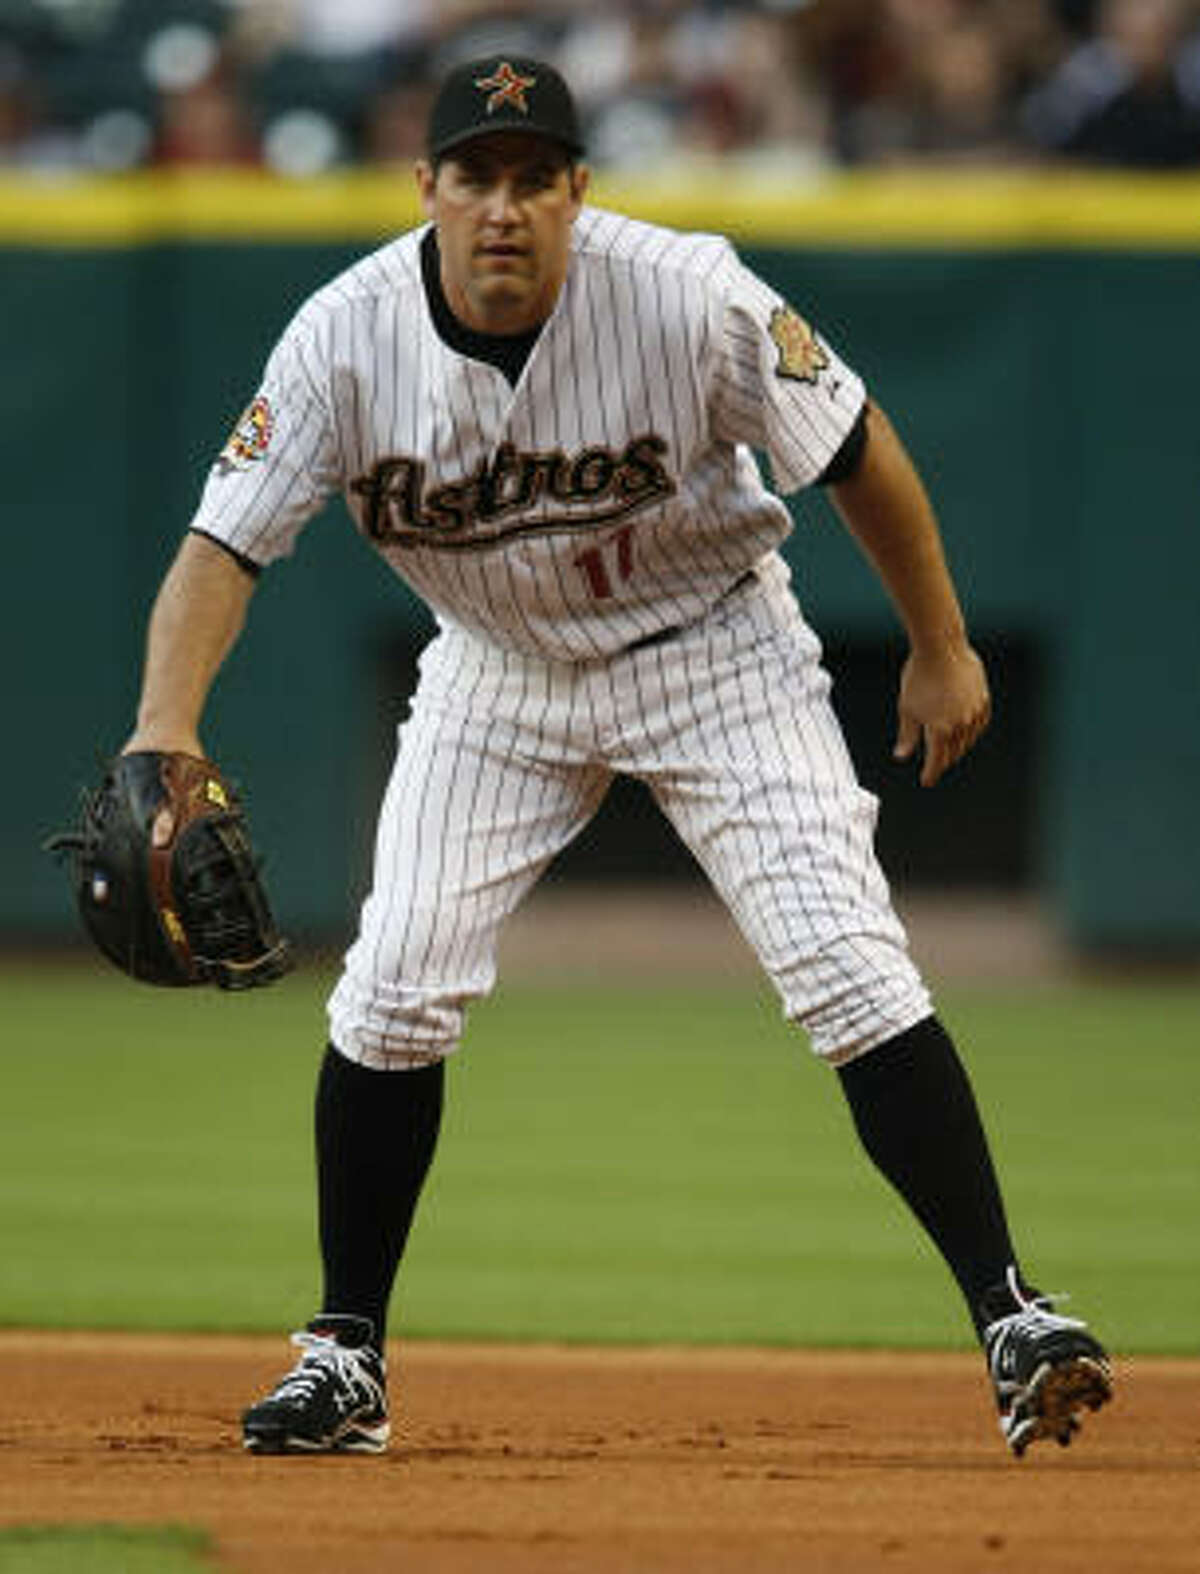 Lance Berkman is in the final year of his contract, with the Astros holding a $15 million option for 2011.